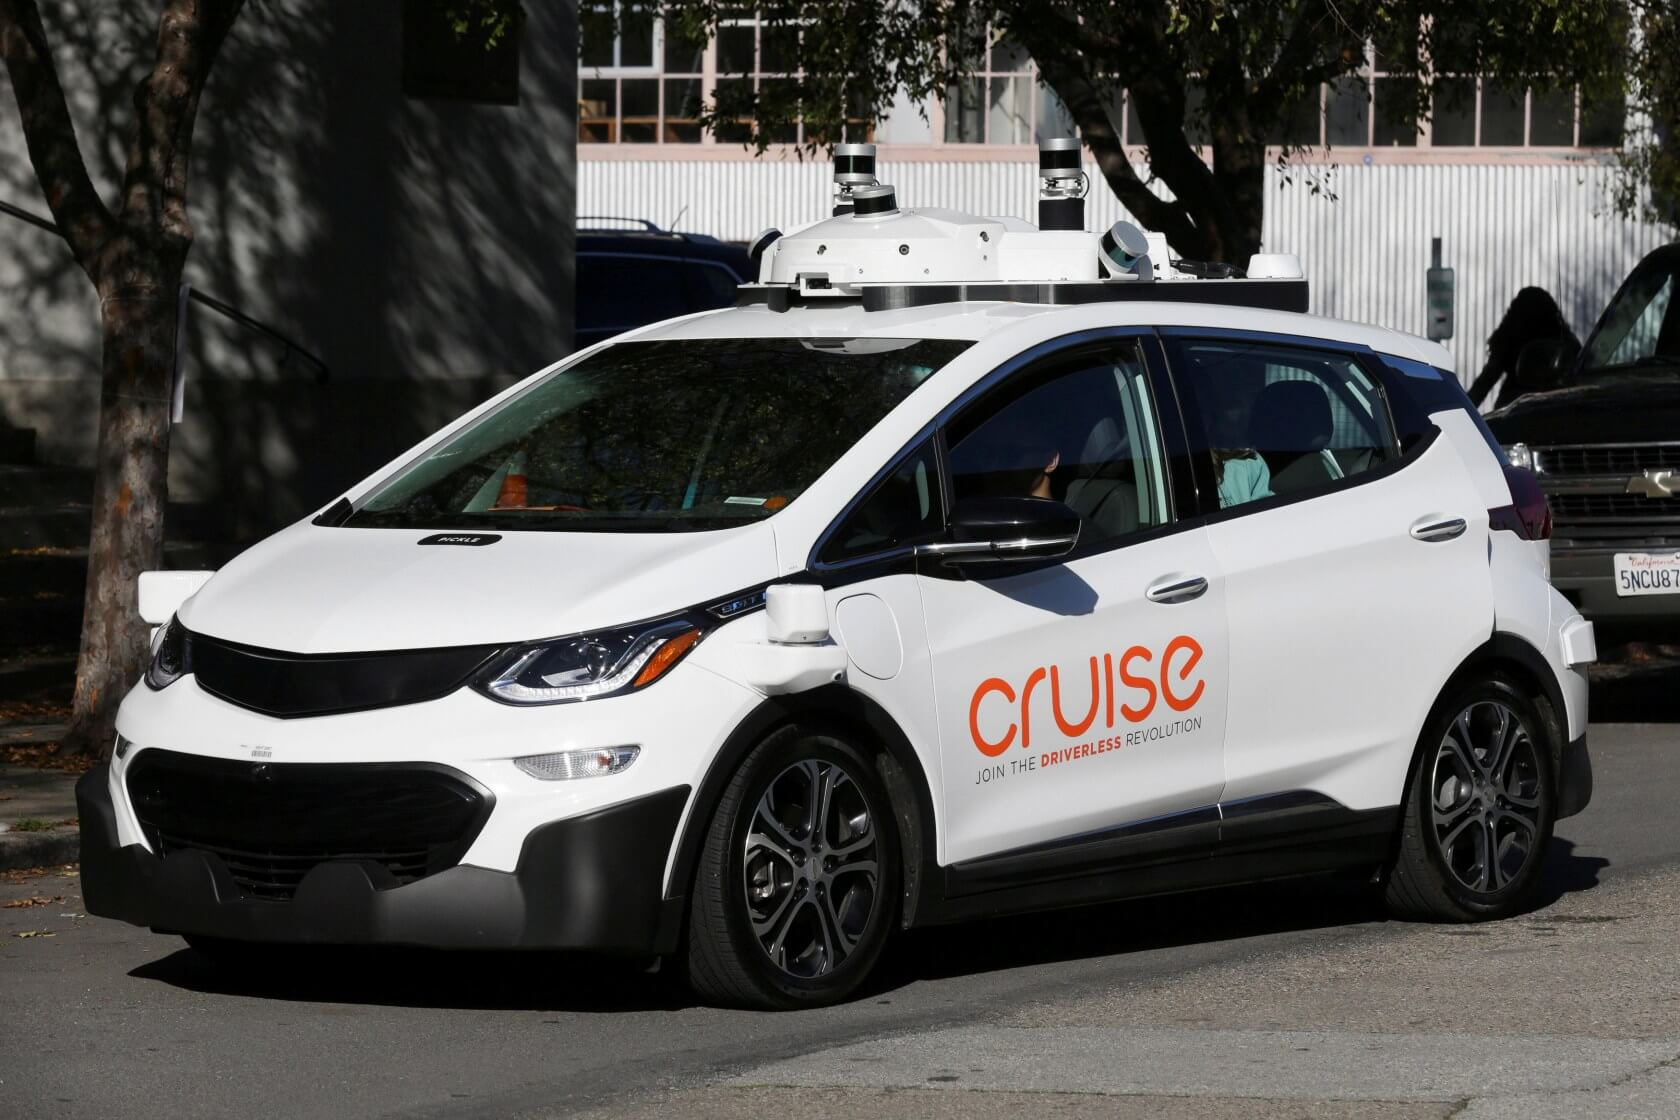 GM-backed Cruise vows to use '100 percent renewable energy' to power its autonomous cars